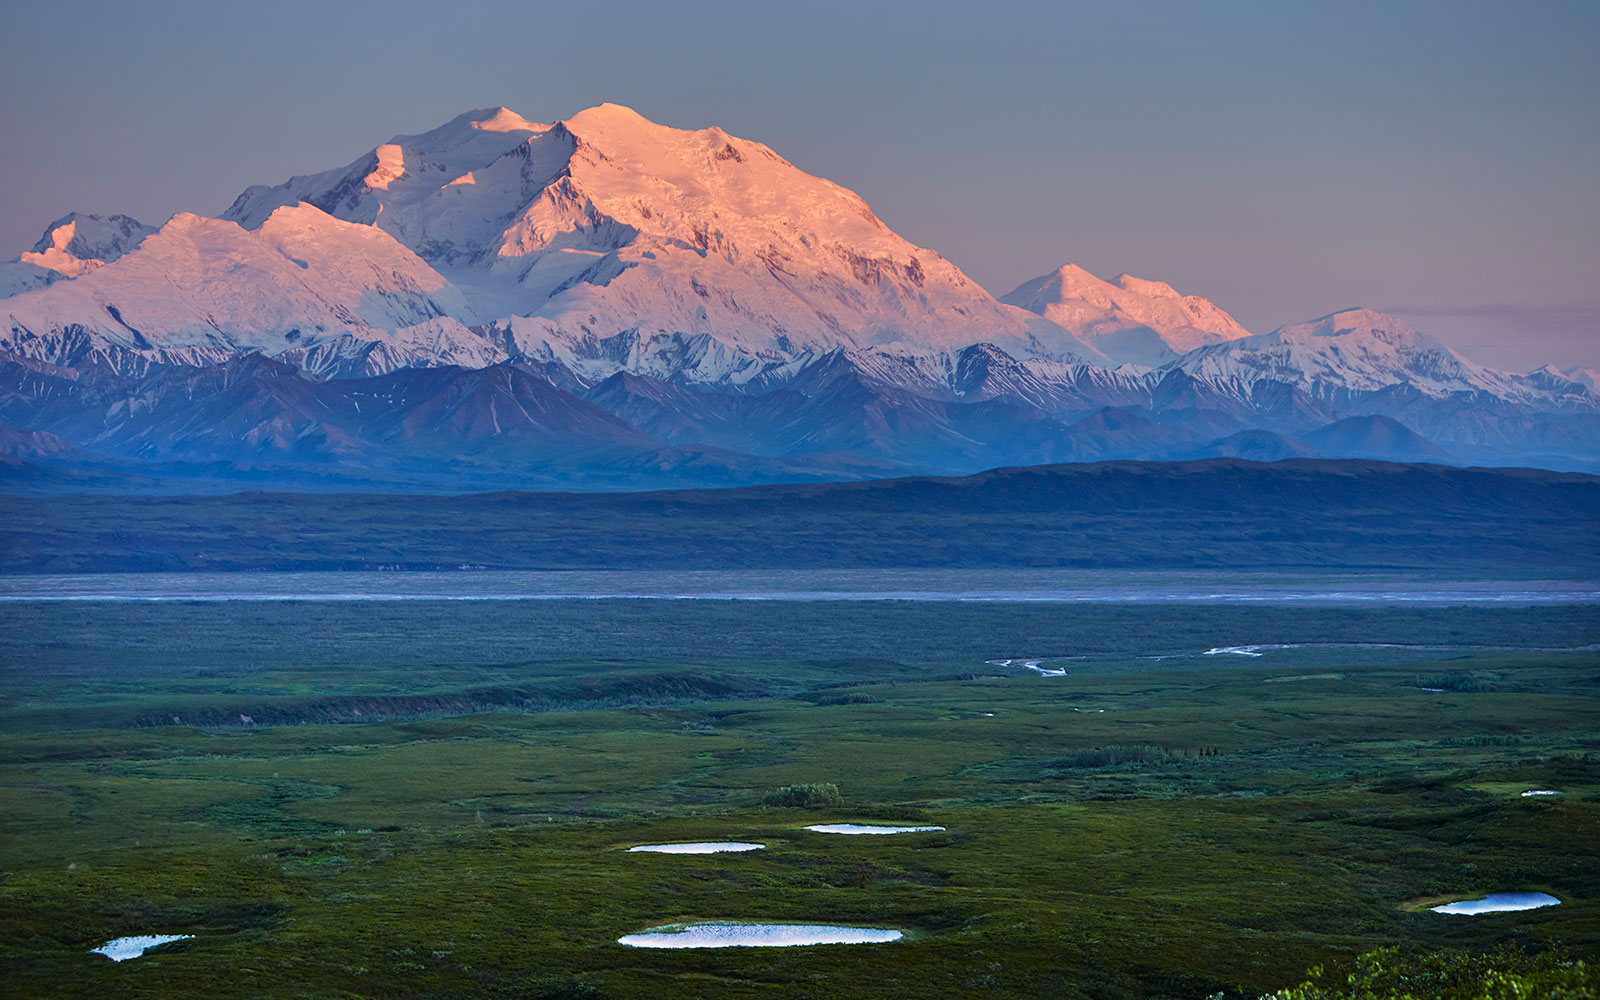 Alaska's Mount McKinley is Now Called Denali